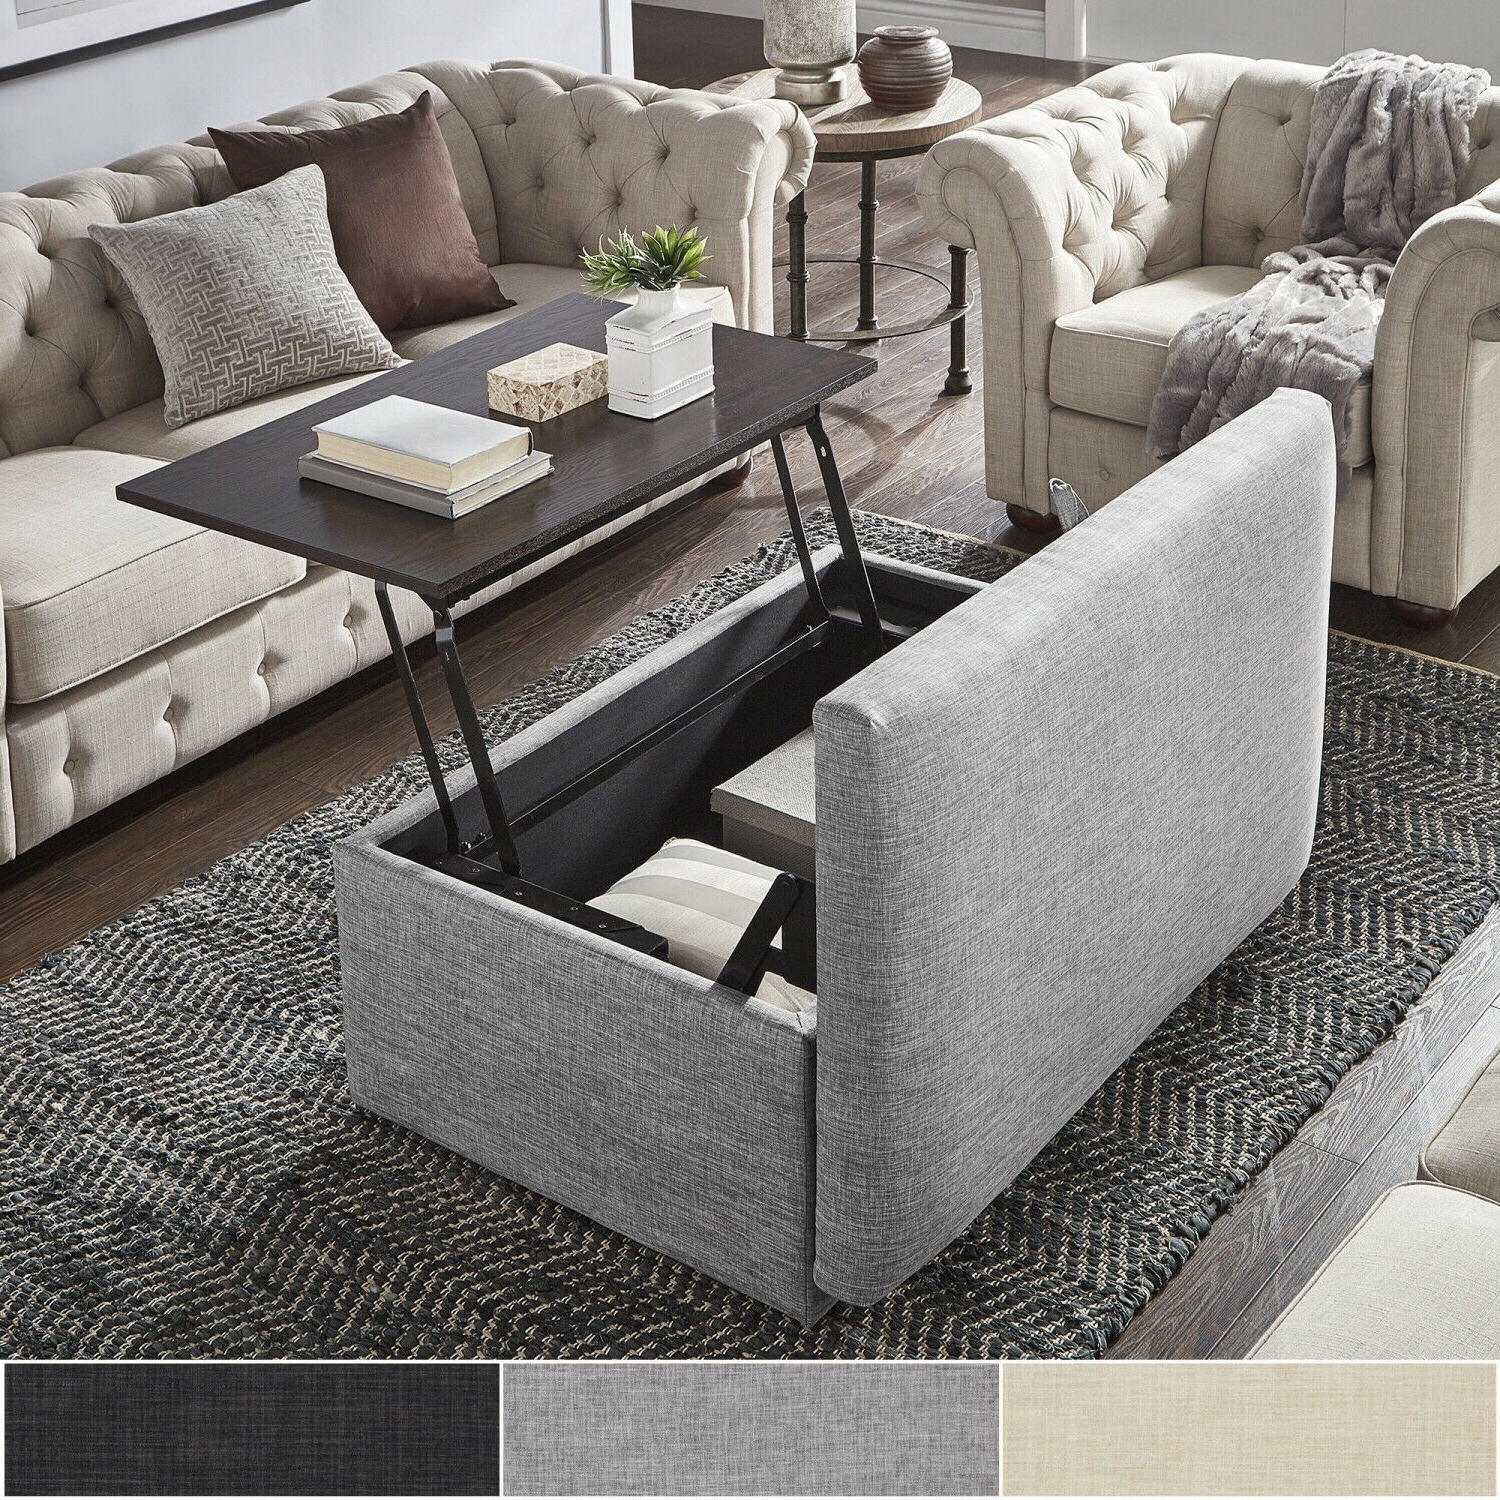 Landen Lift Top Upholstered Storage Ottoman Coffee Tableinspire Q  Artisan For Favorite Myra Vintage Industrial Modern Rustic 47 Inch Coffee Tables (View 4 of 20)